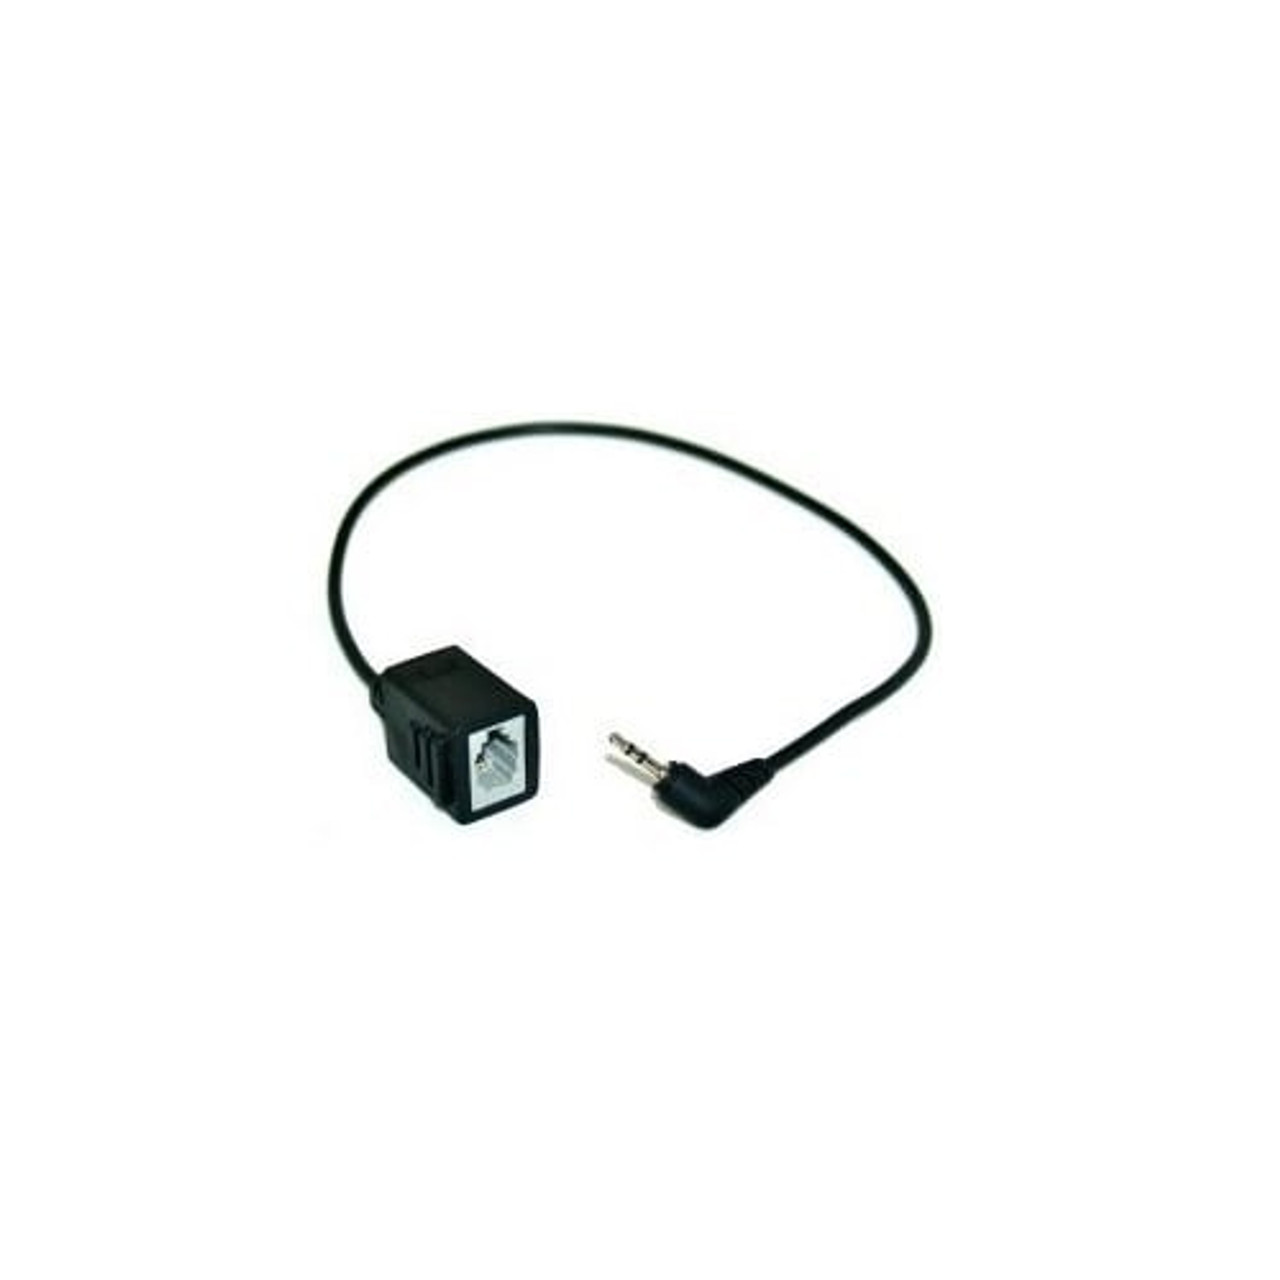 hight resolution of rj9 female 2 5mm male adapter plantronics headset to cordless phone connector cable